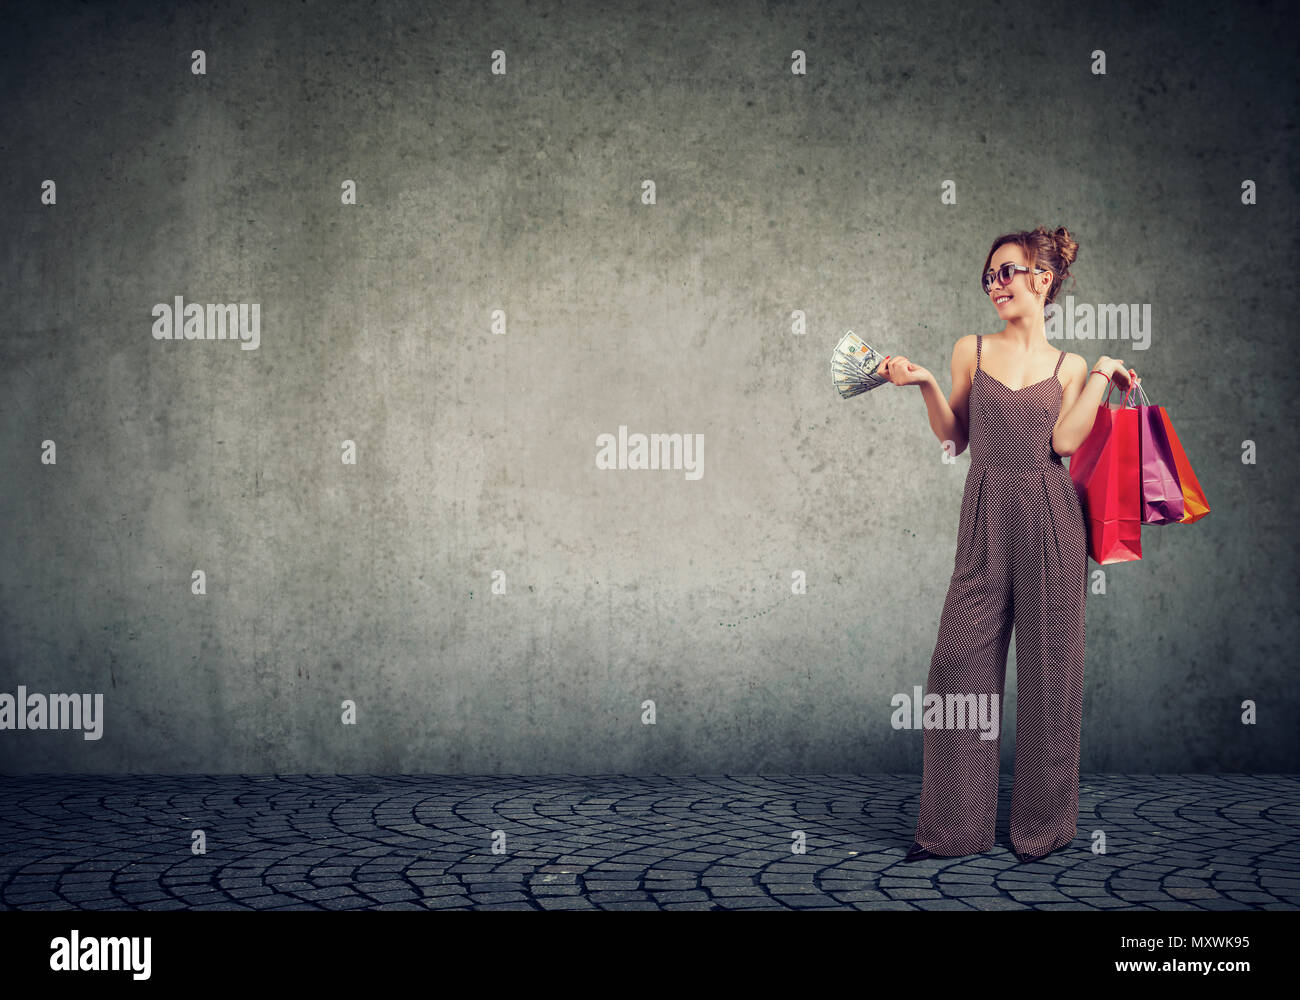 Stylish young woman holding paper bags and wasting money on shopping looking confident. - Stock Image